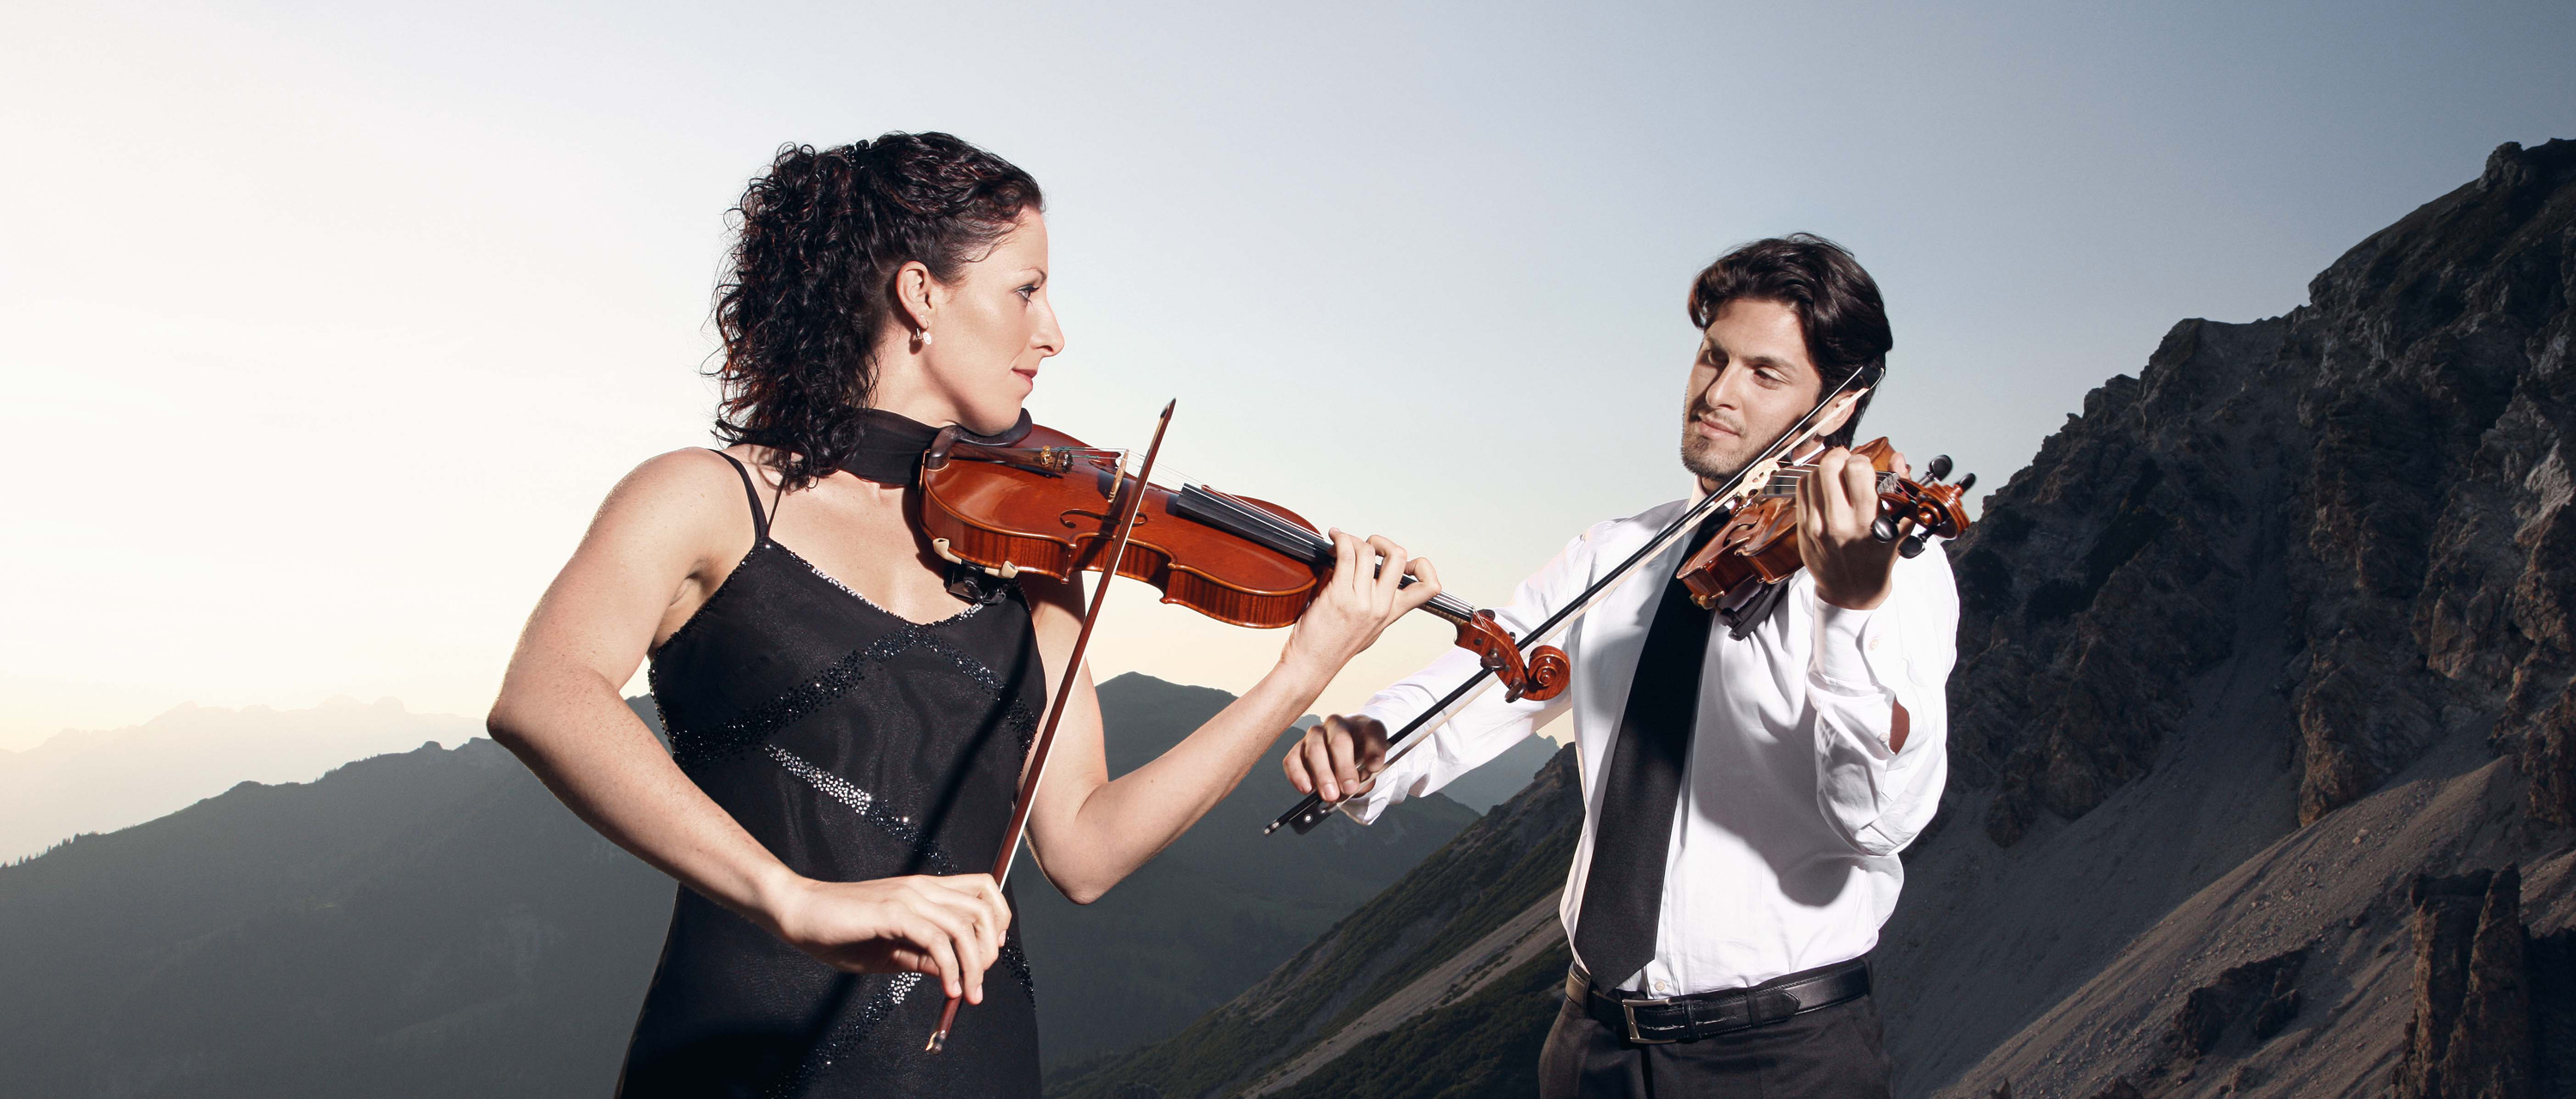 Two people are playing violin